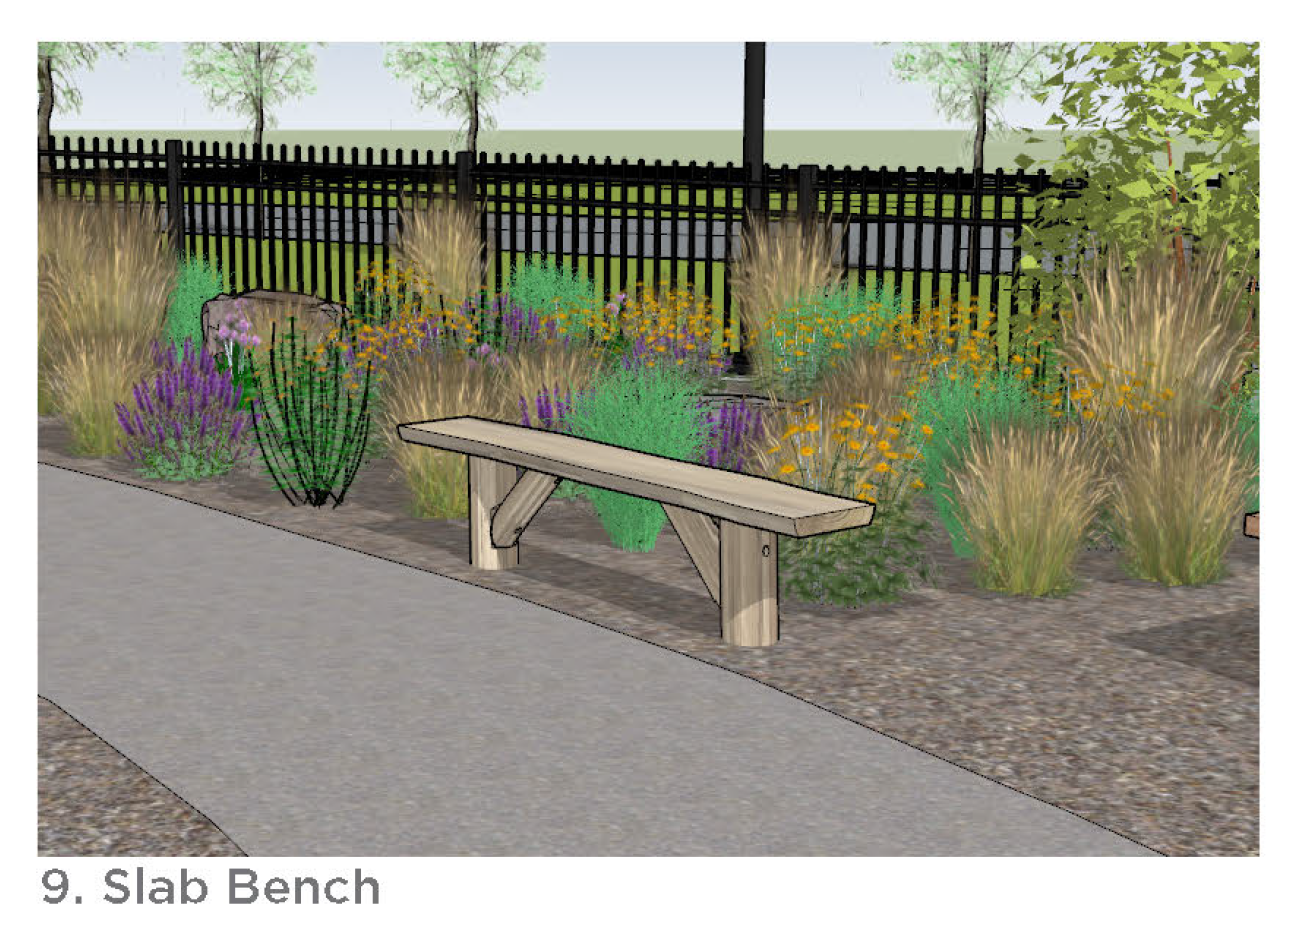 Photo of the slab bench.